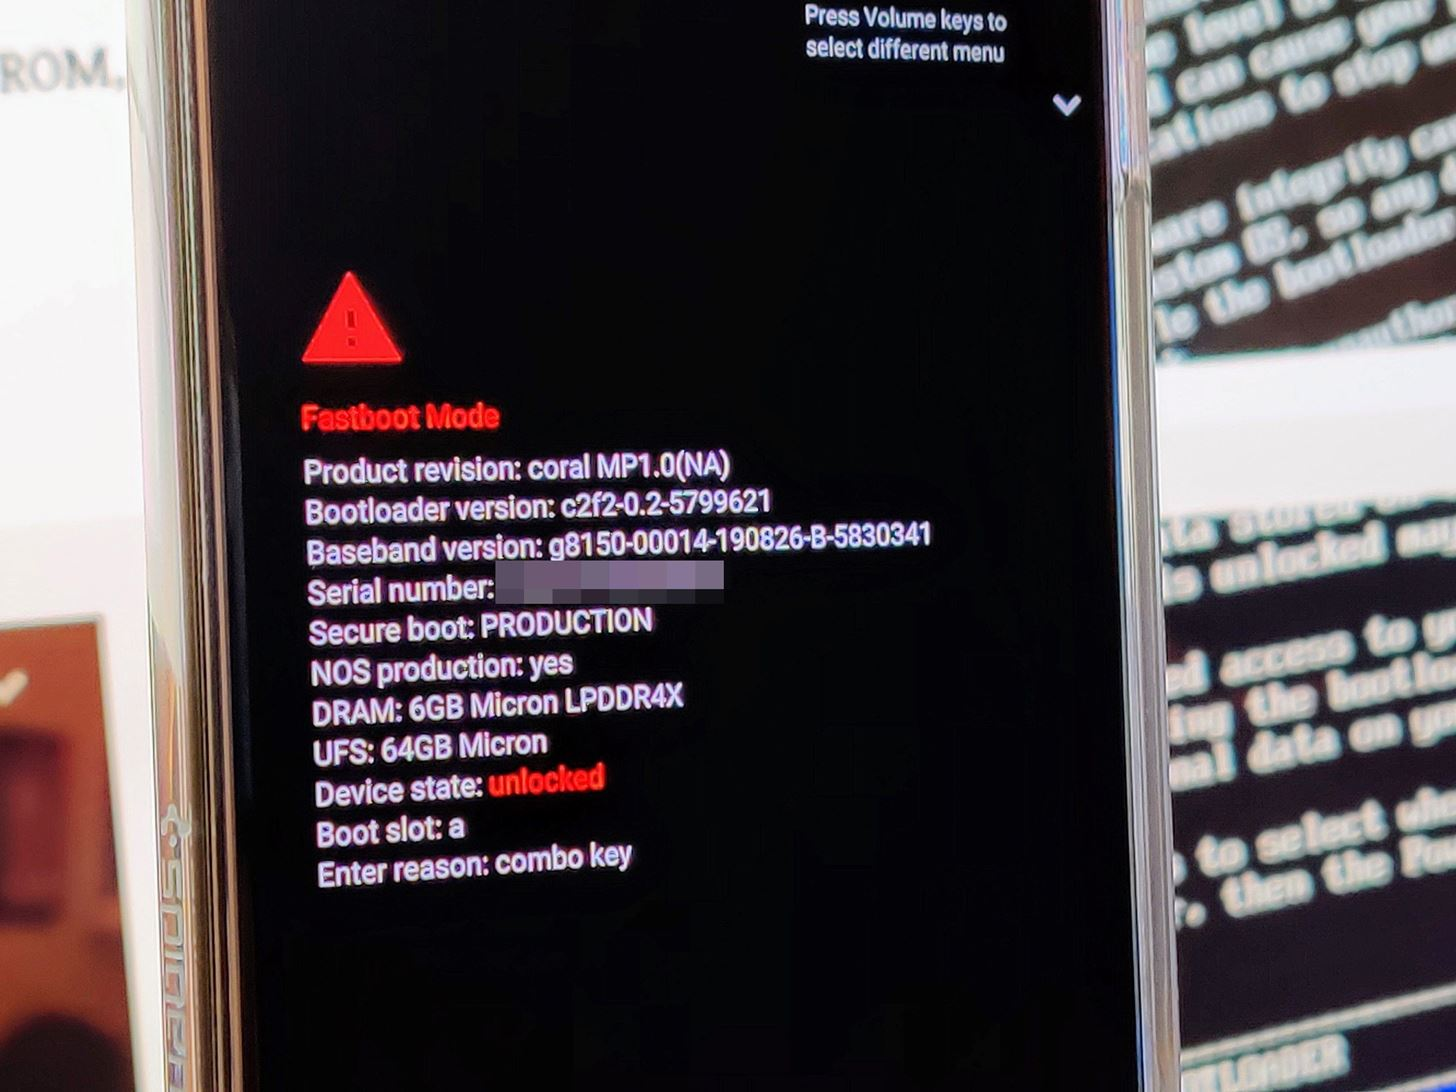 Pixel 4 Bootlooping After Installing a Magisk Module? Here's How to Fix It Without TWRP